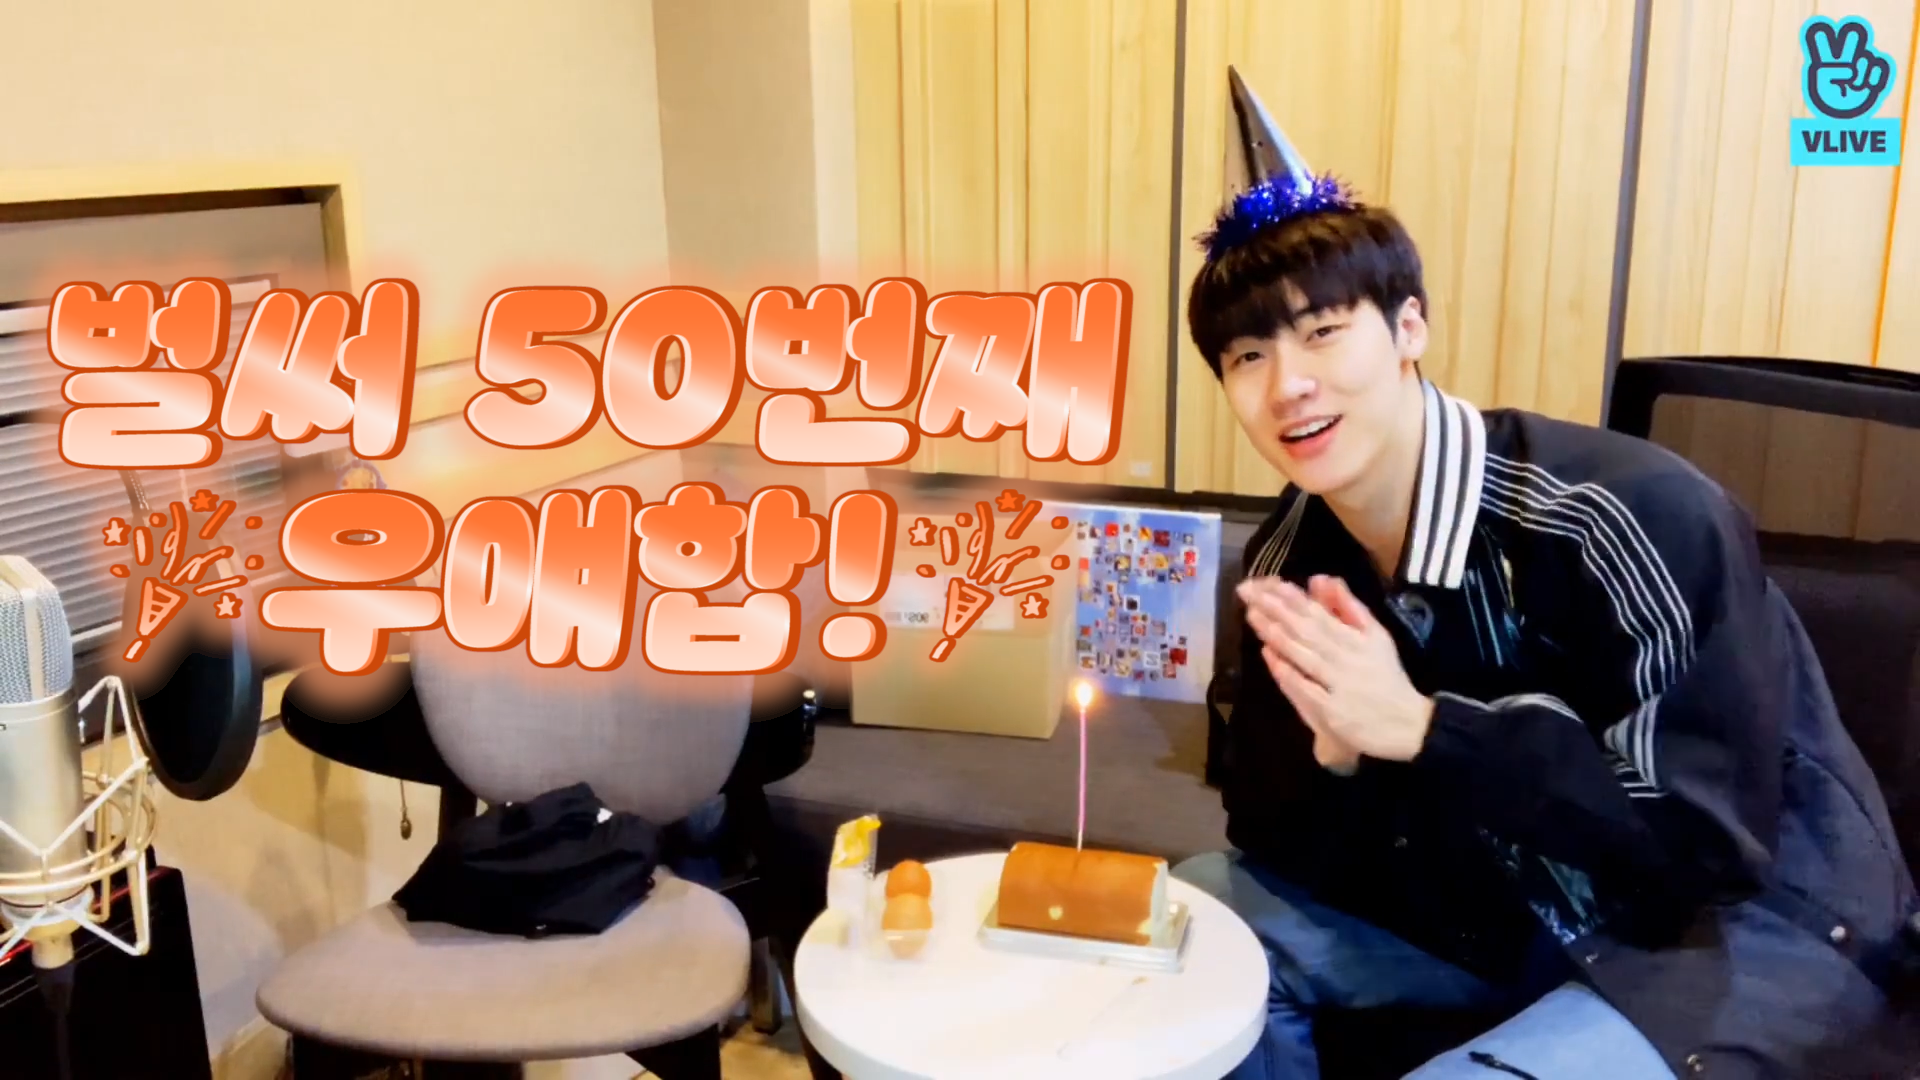 [N.Flying] 사랑하는 우얘합&승짱💕 50회를 축하해!!!🎉 (SeungHyub's MBTI test&making fan chant)